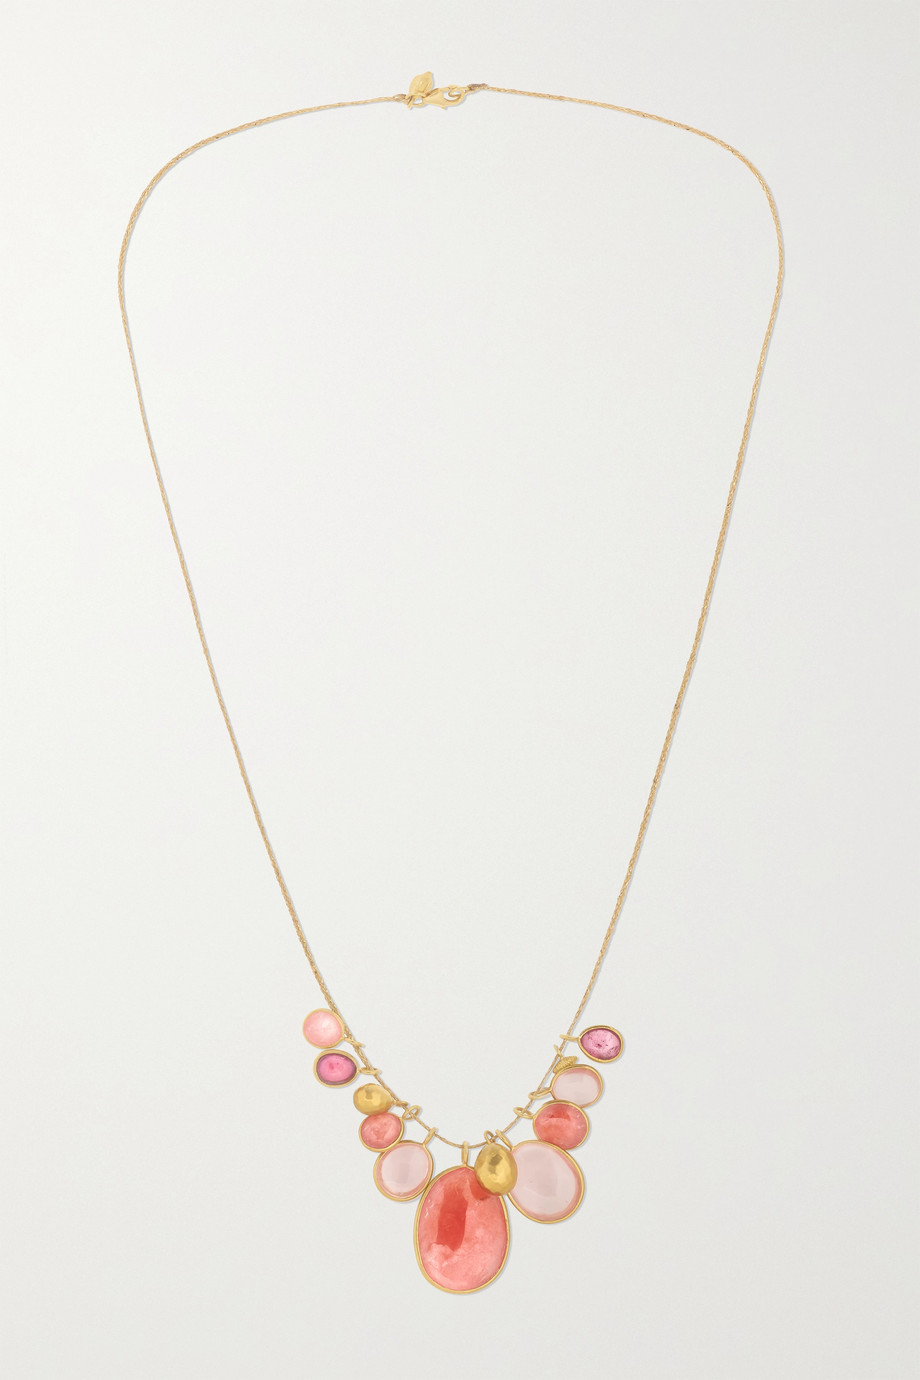 Pippa Small Collier en or 18carats et pierres multiples